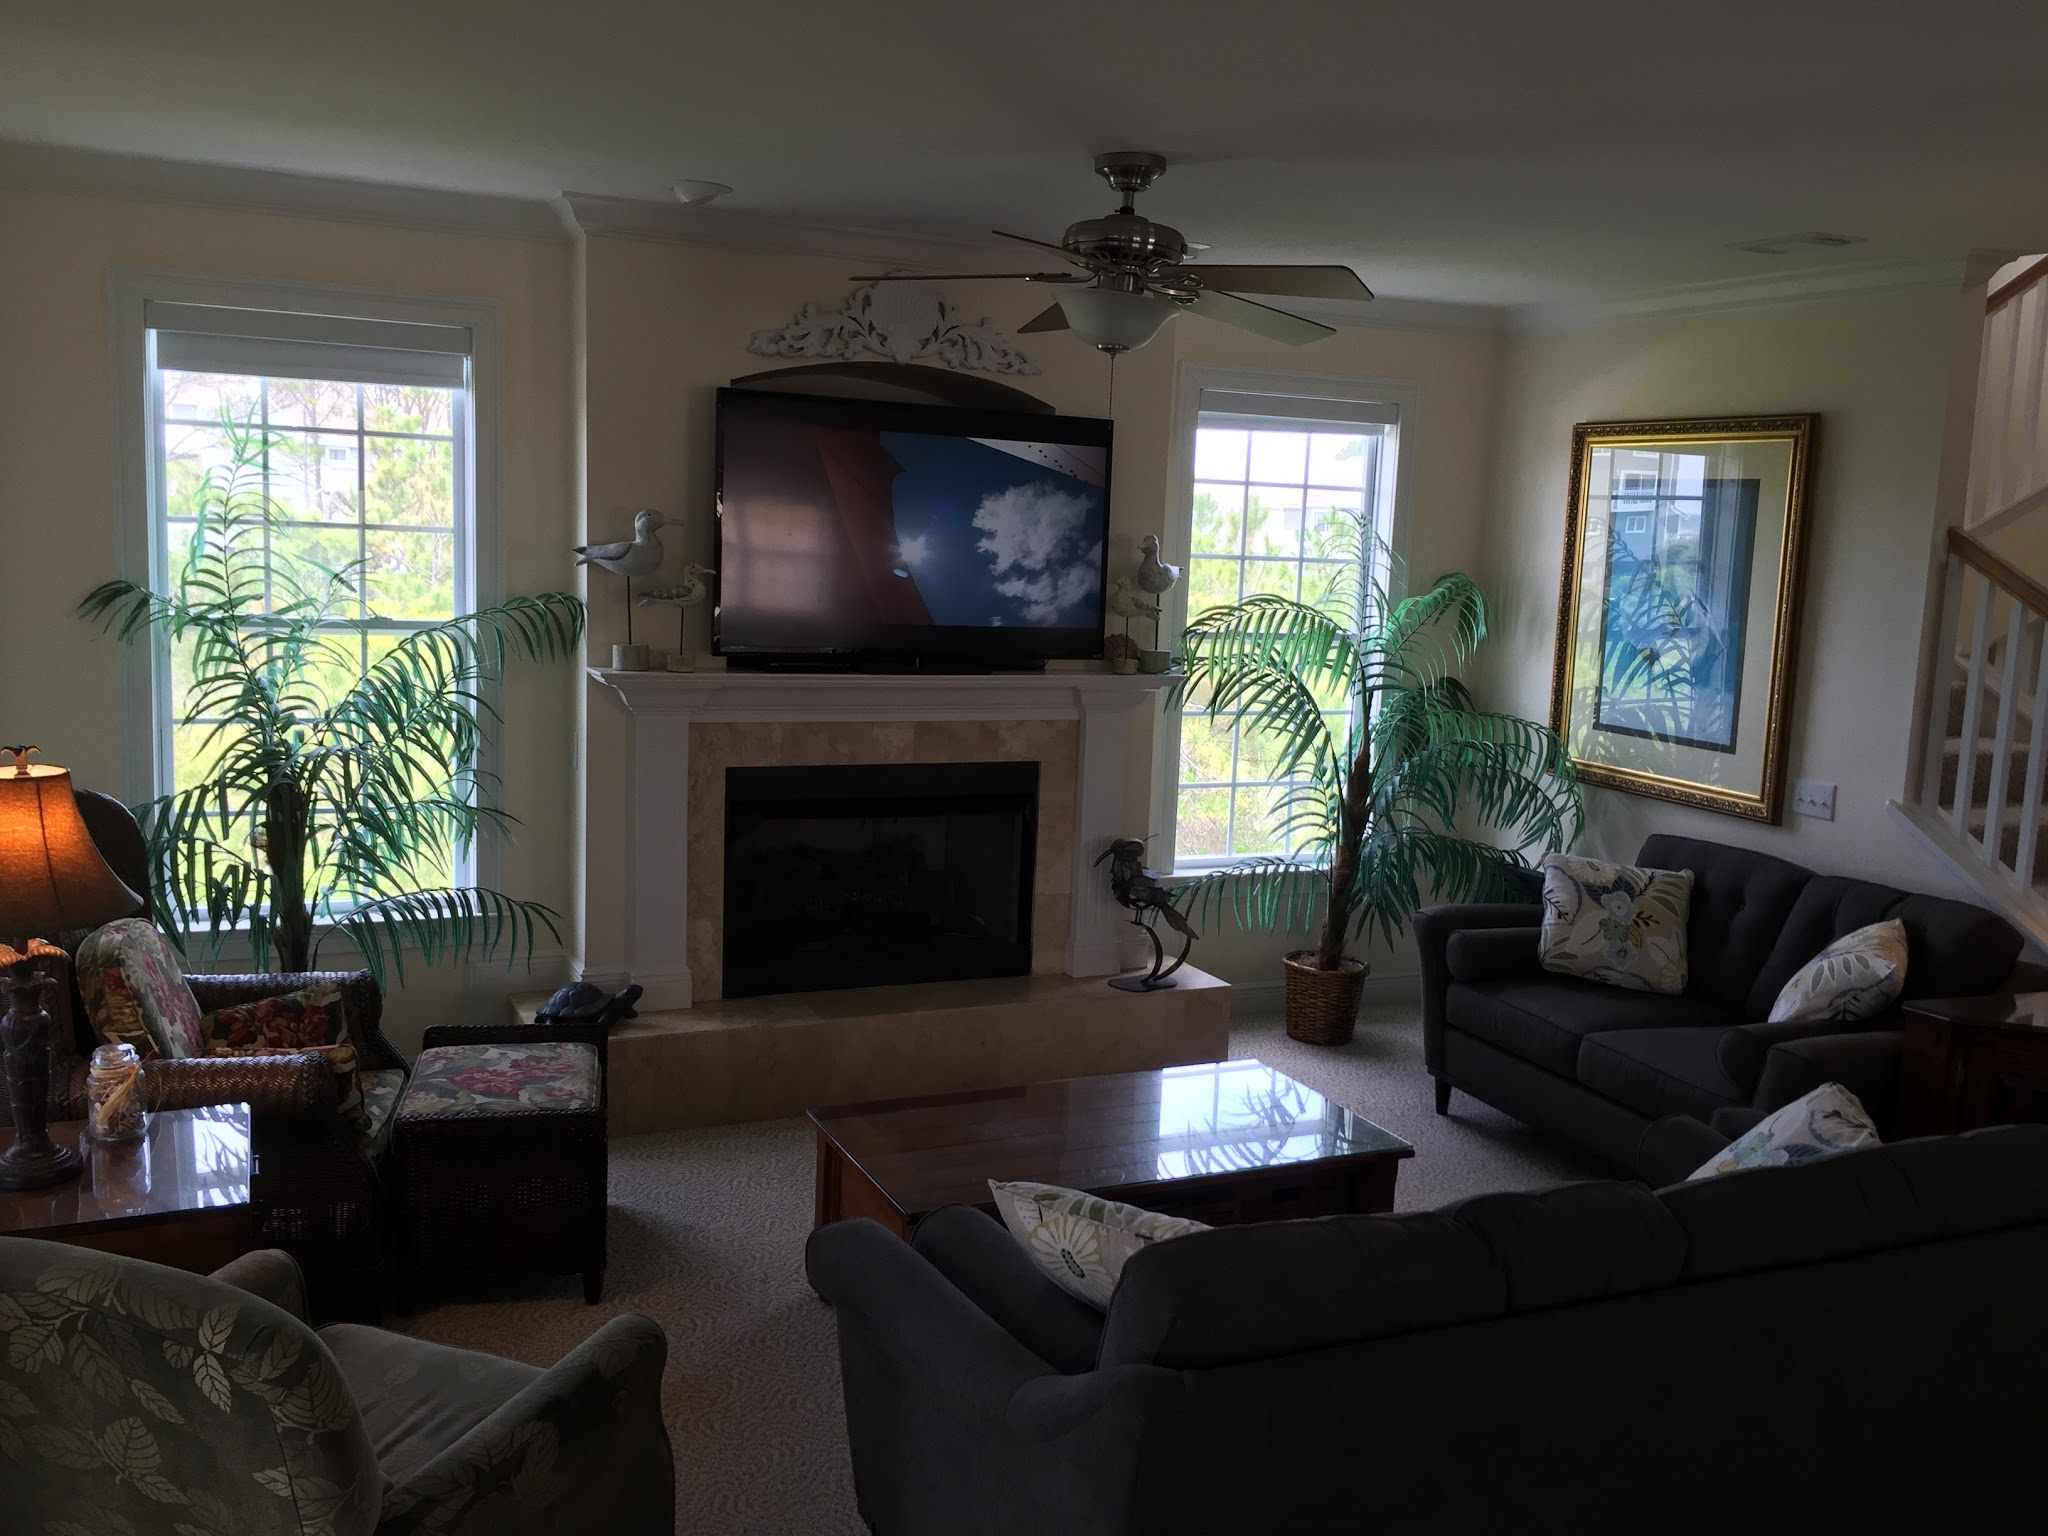 Photo: Living area with gas fireplace